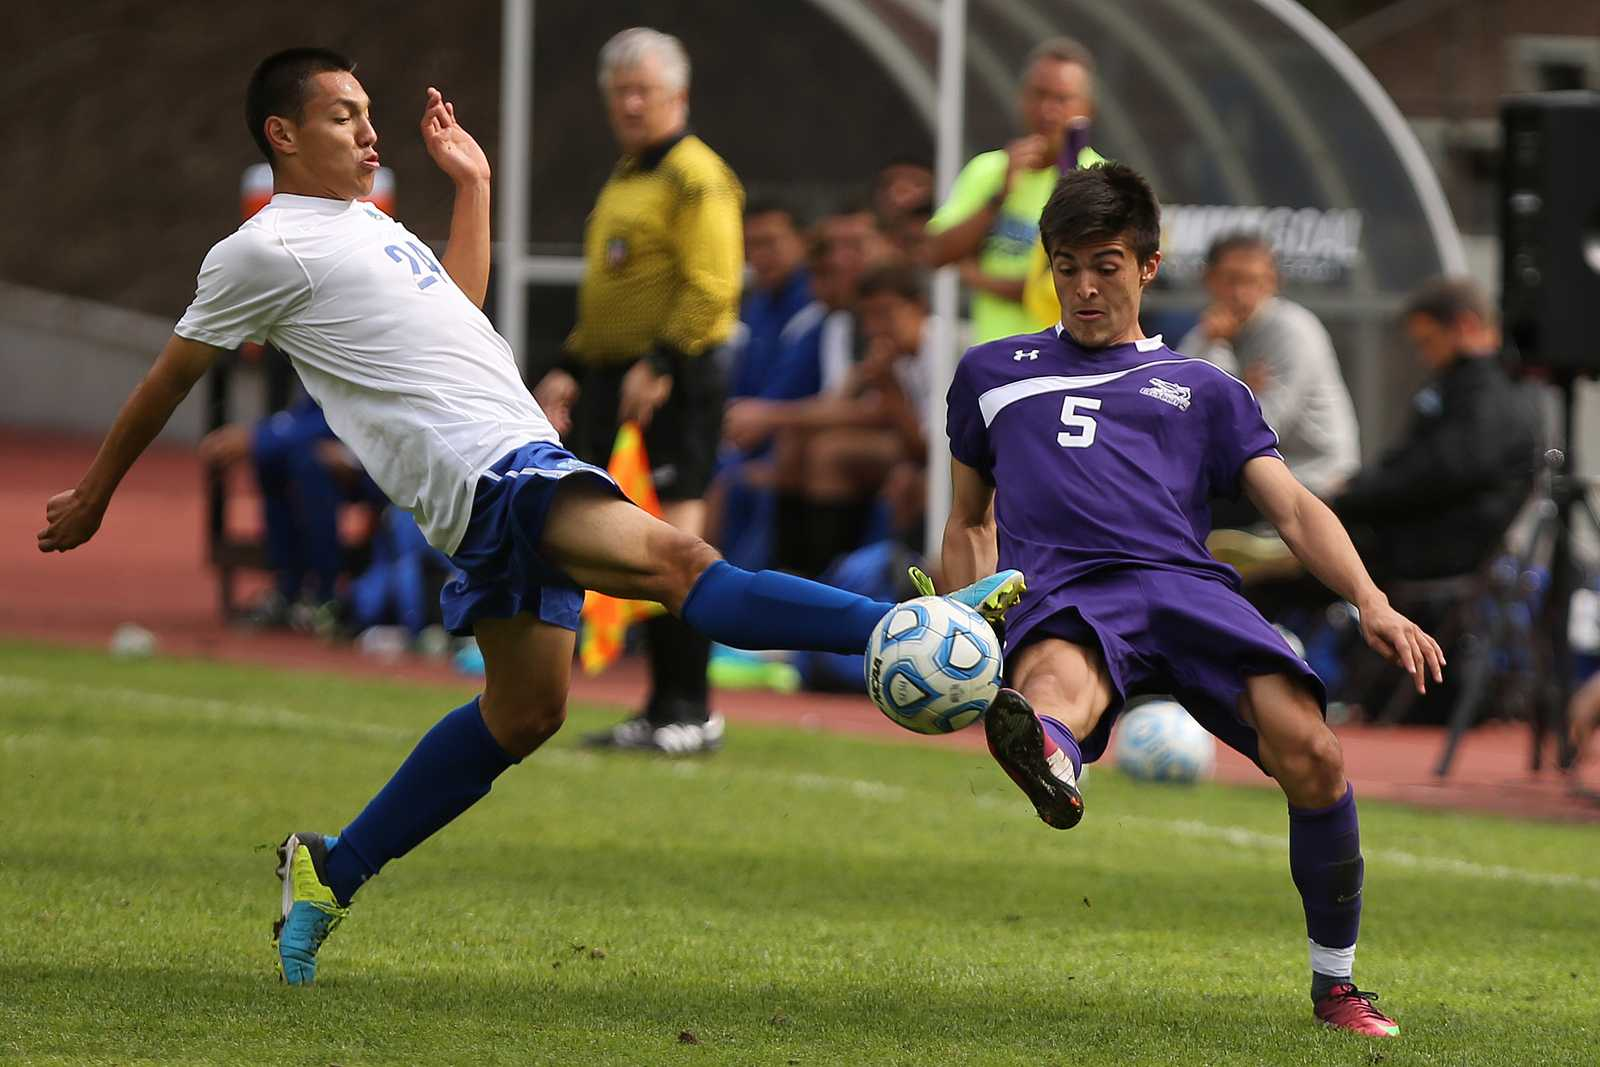 Carlos Bailon, left, and Matias Rodriguez fight for control of the ball at Cox Stadium during the second half of the game between the SF State Gators and the Cal State San Bernardino Coyotes on Nov. 3. Photo by John Ornelas / Xpress